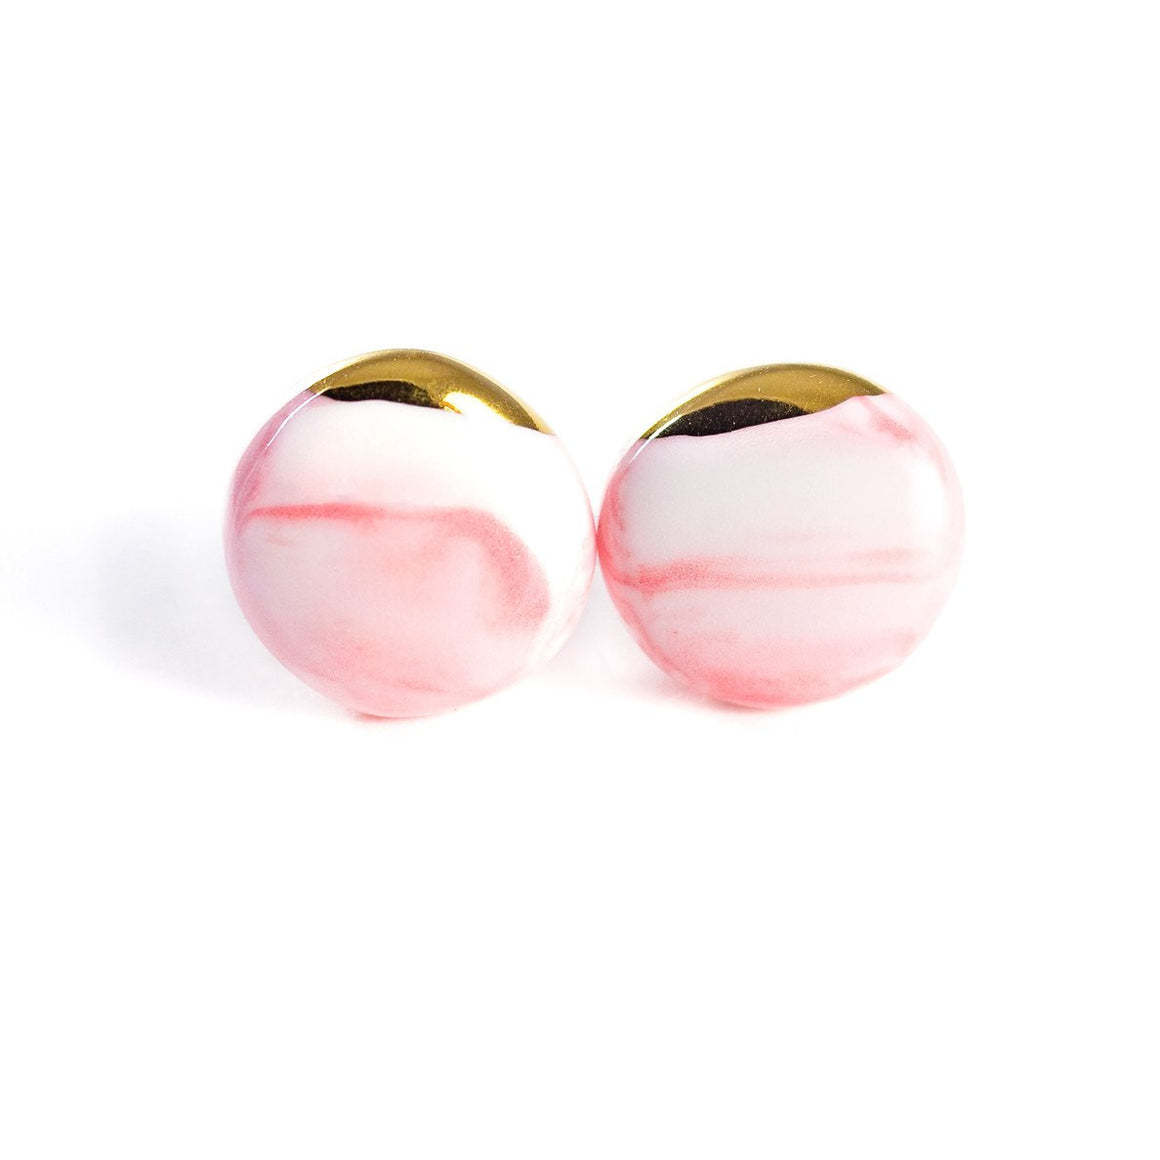 Cecolors Earring Pink Kollidea Accessories